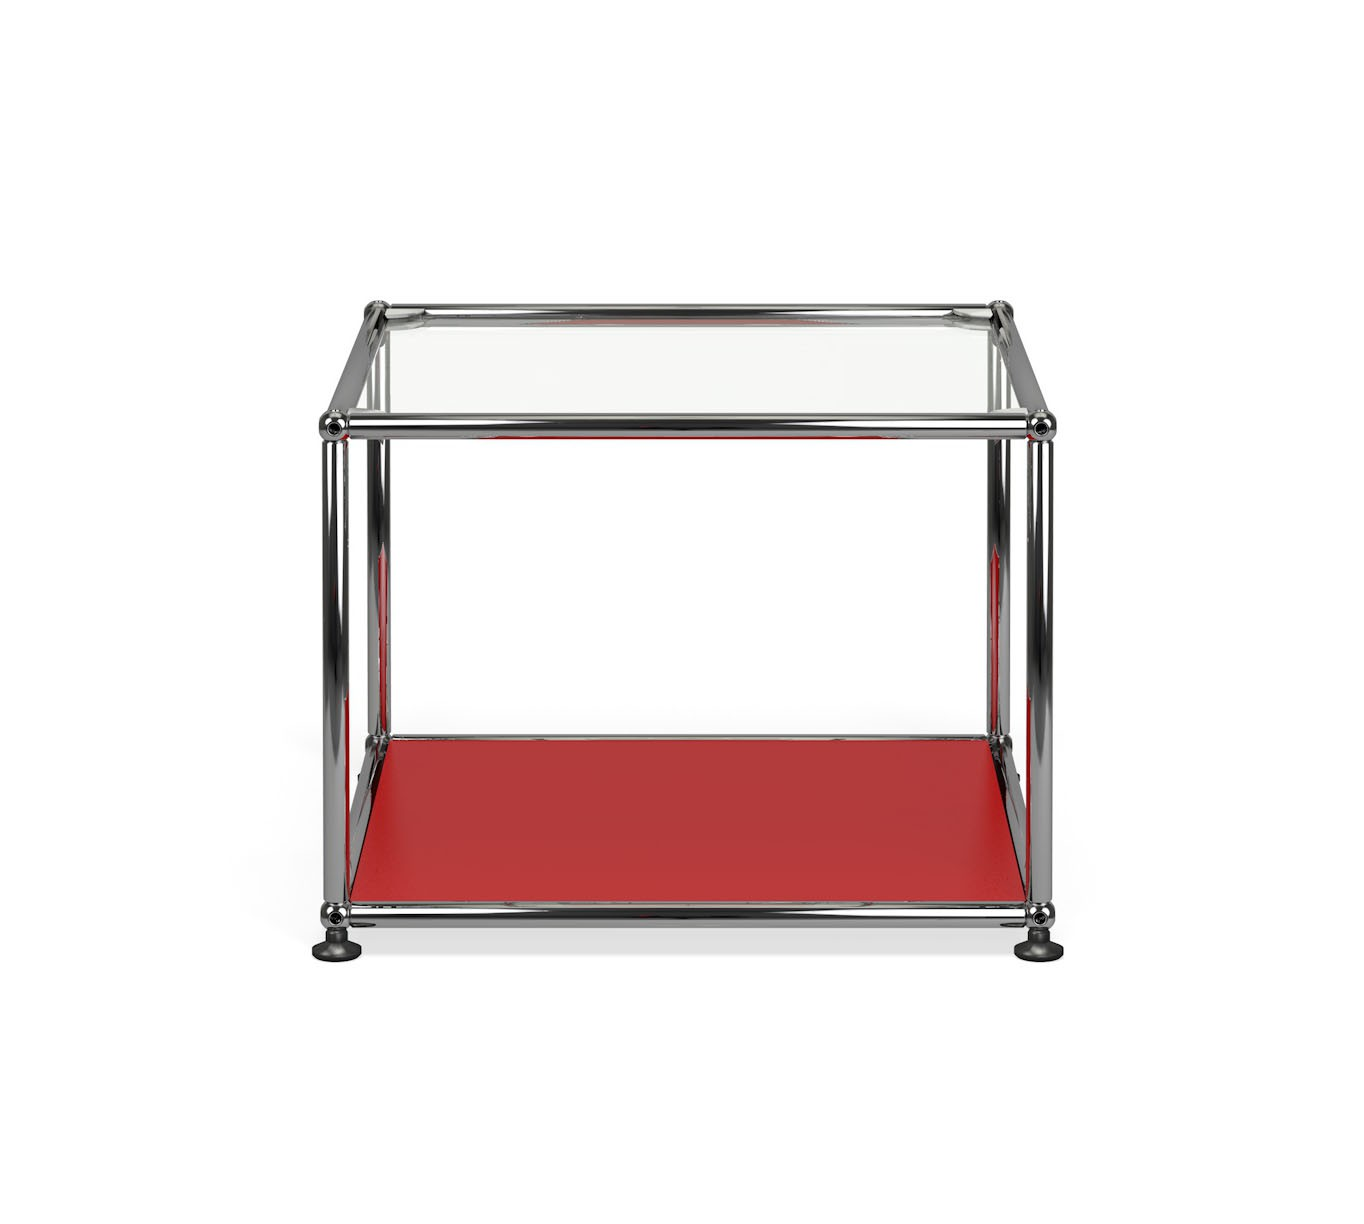 Petite table basse carr e usm haller m17 rouge rubis for Table basse rubis